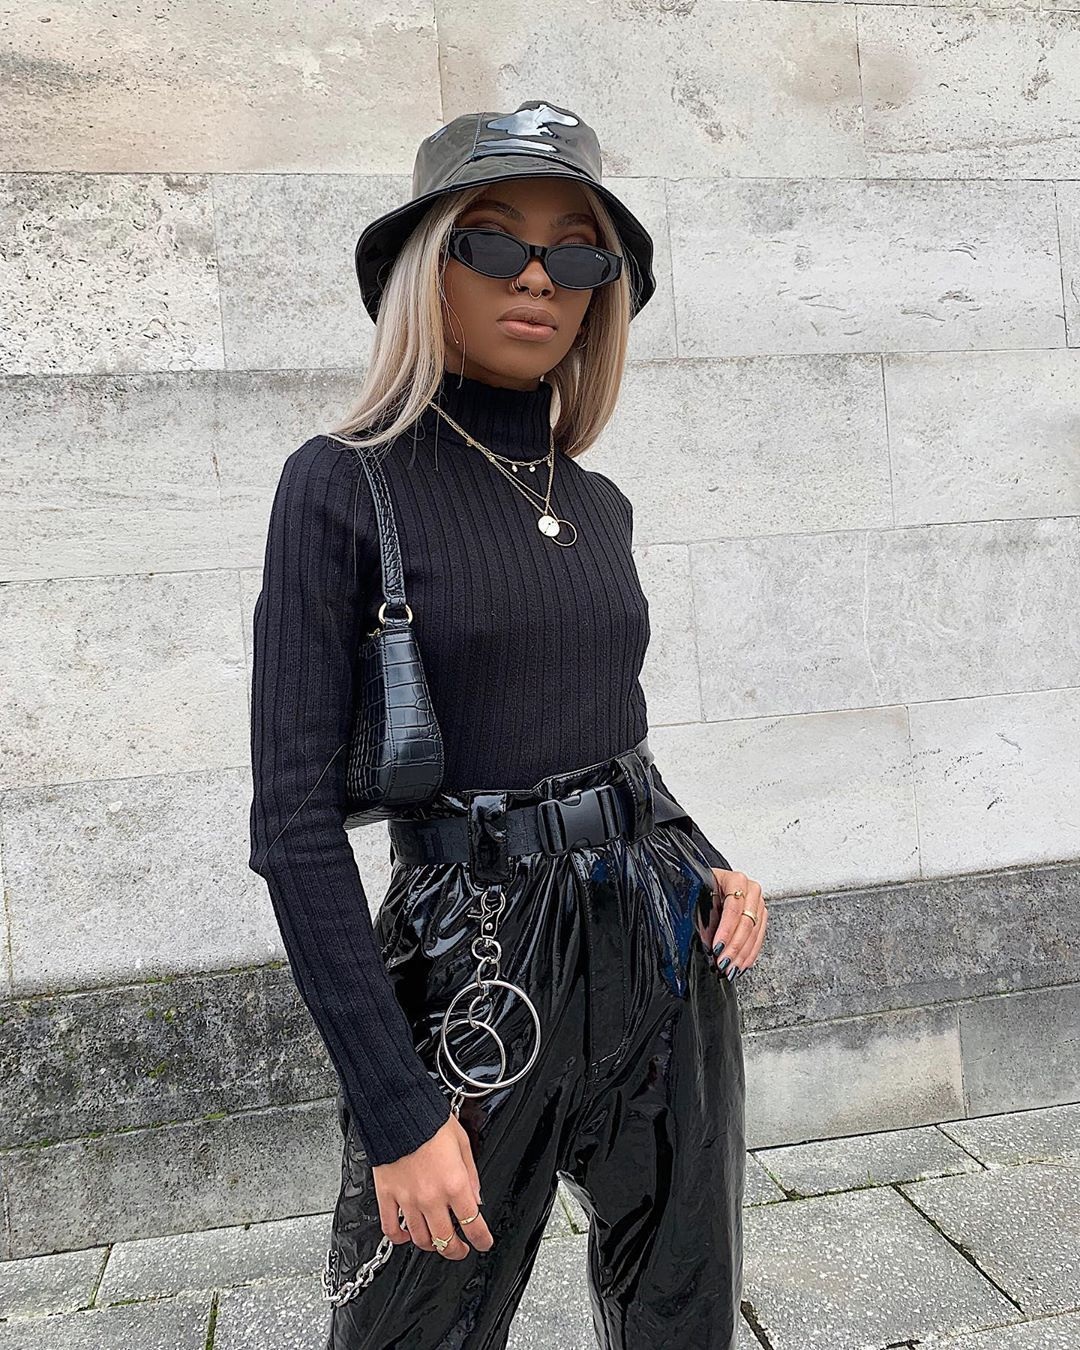 Mpho Lebajoa On Instagram Currently Collecting Bucket Hats Tap For Product Details Outfits With Hats Black Bucket Hat Outfit Street Style Black Hat Outfit